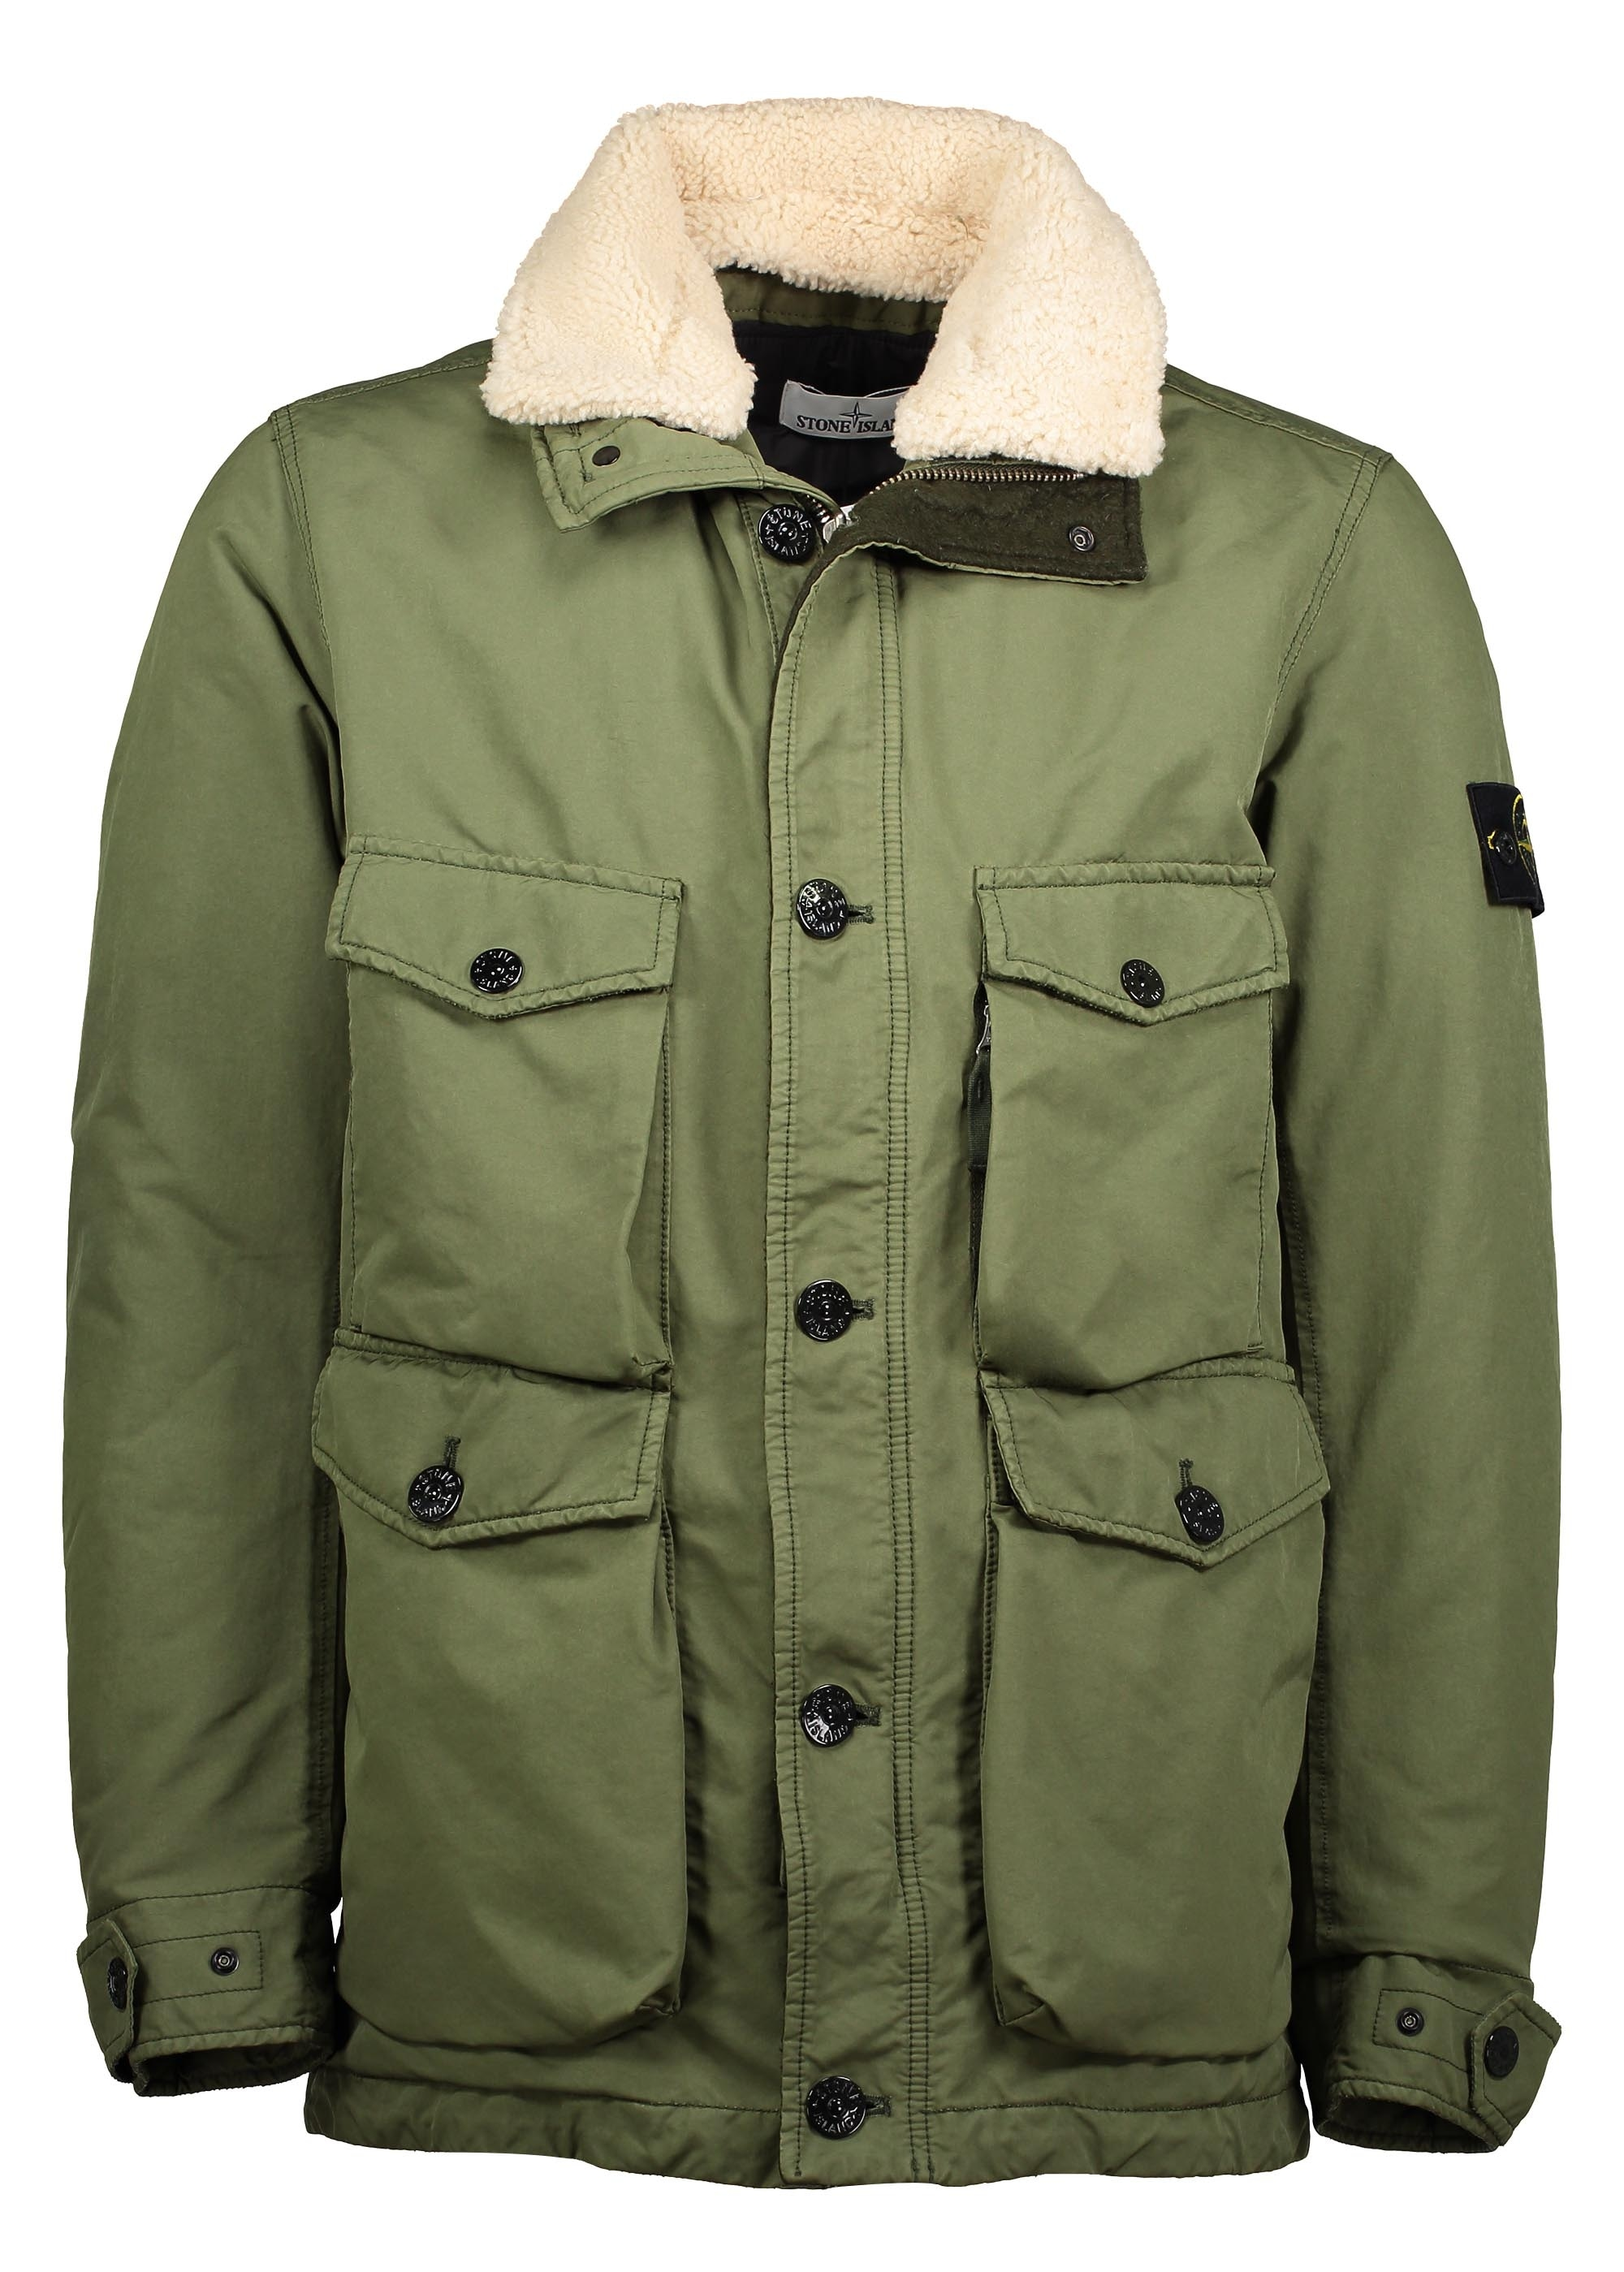 stone island david tc jacket sage triads mens from. Black Bedroom Furniture Sets. Home Design Ideas